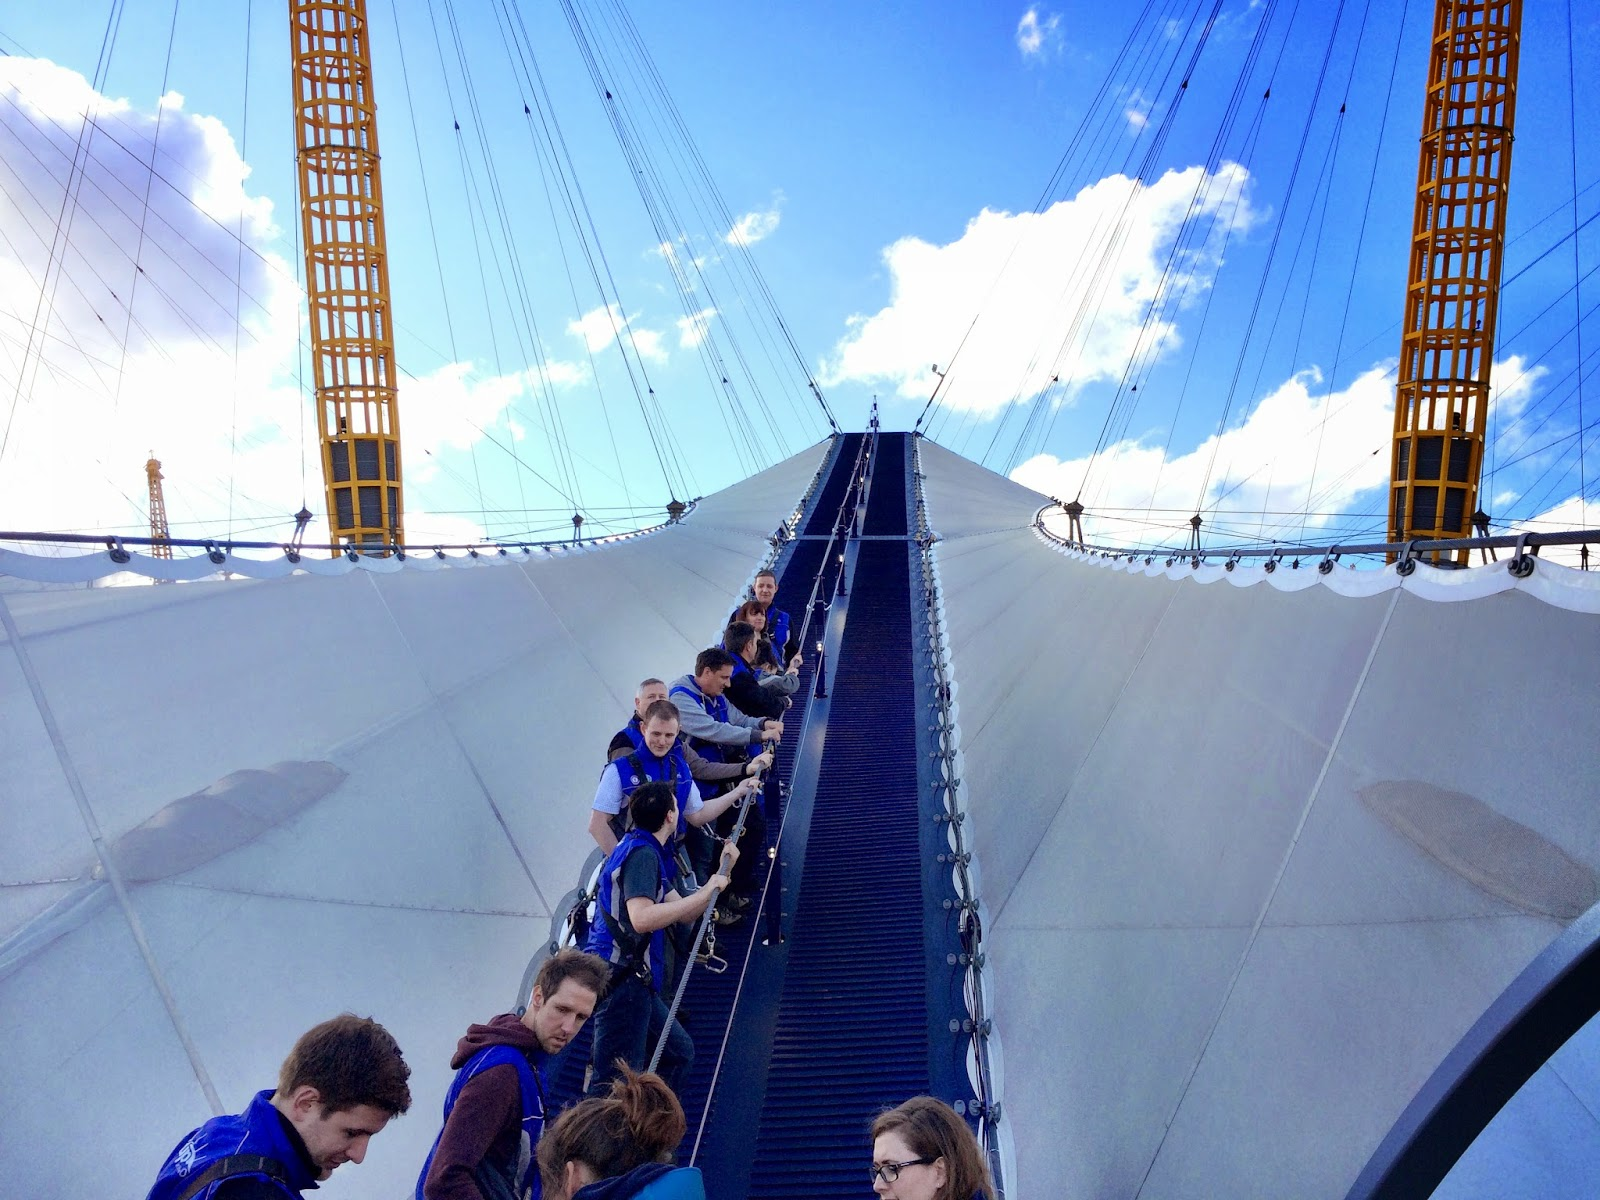 Hiking single file over the O2 Arena